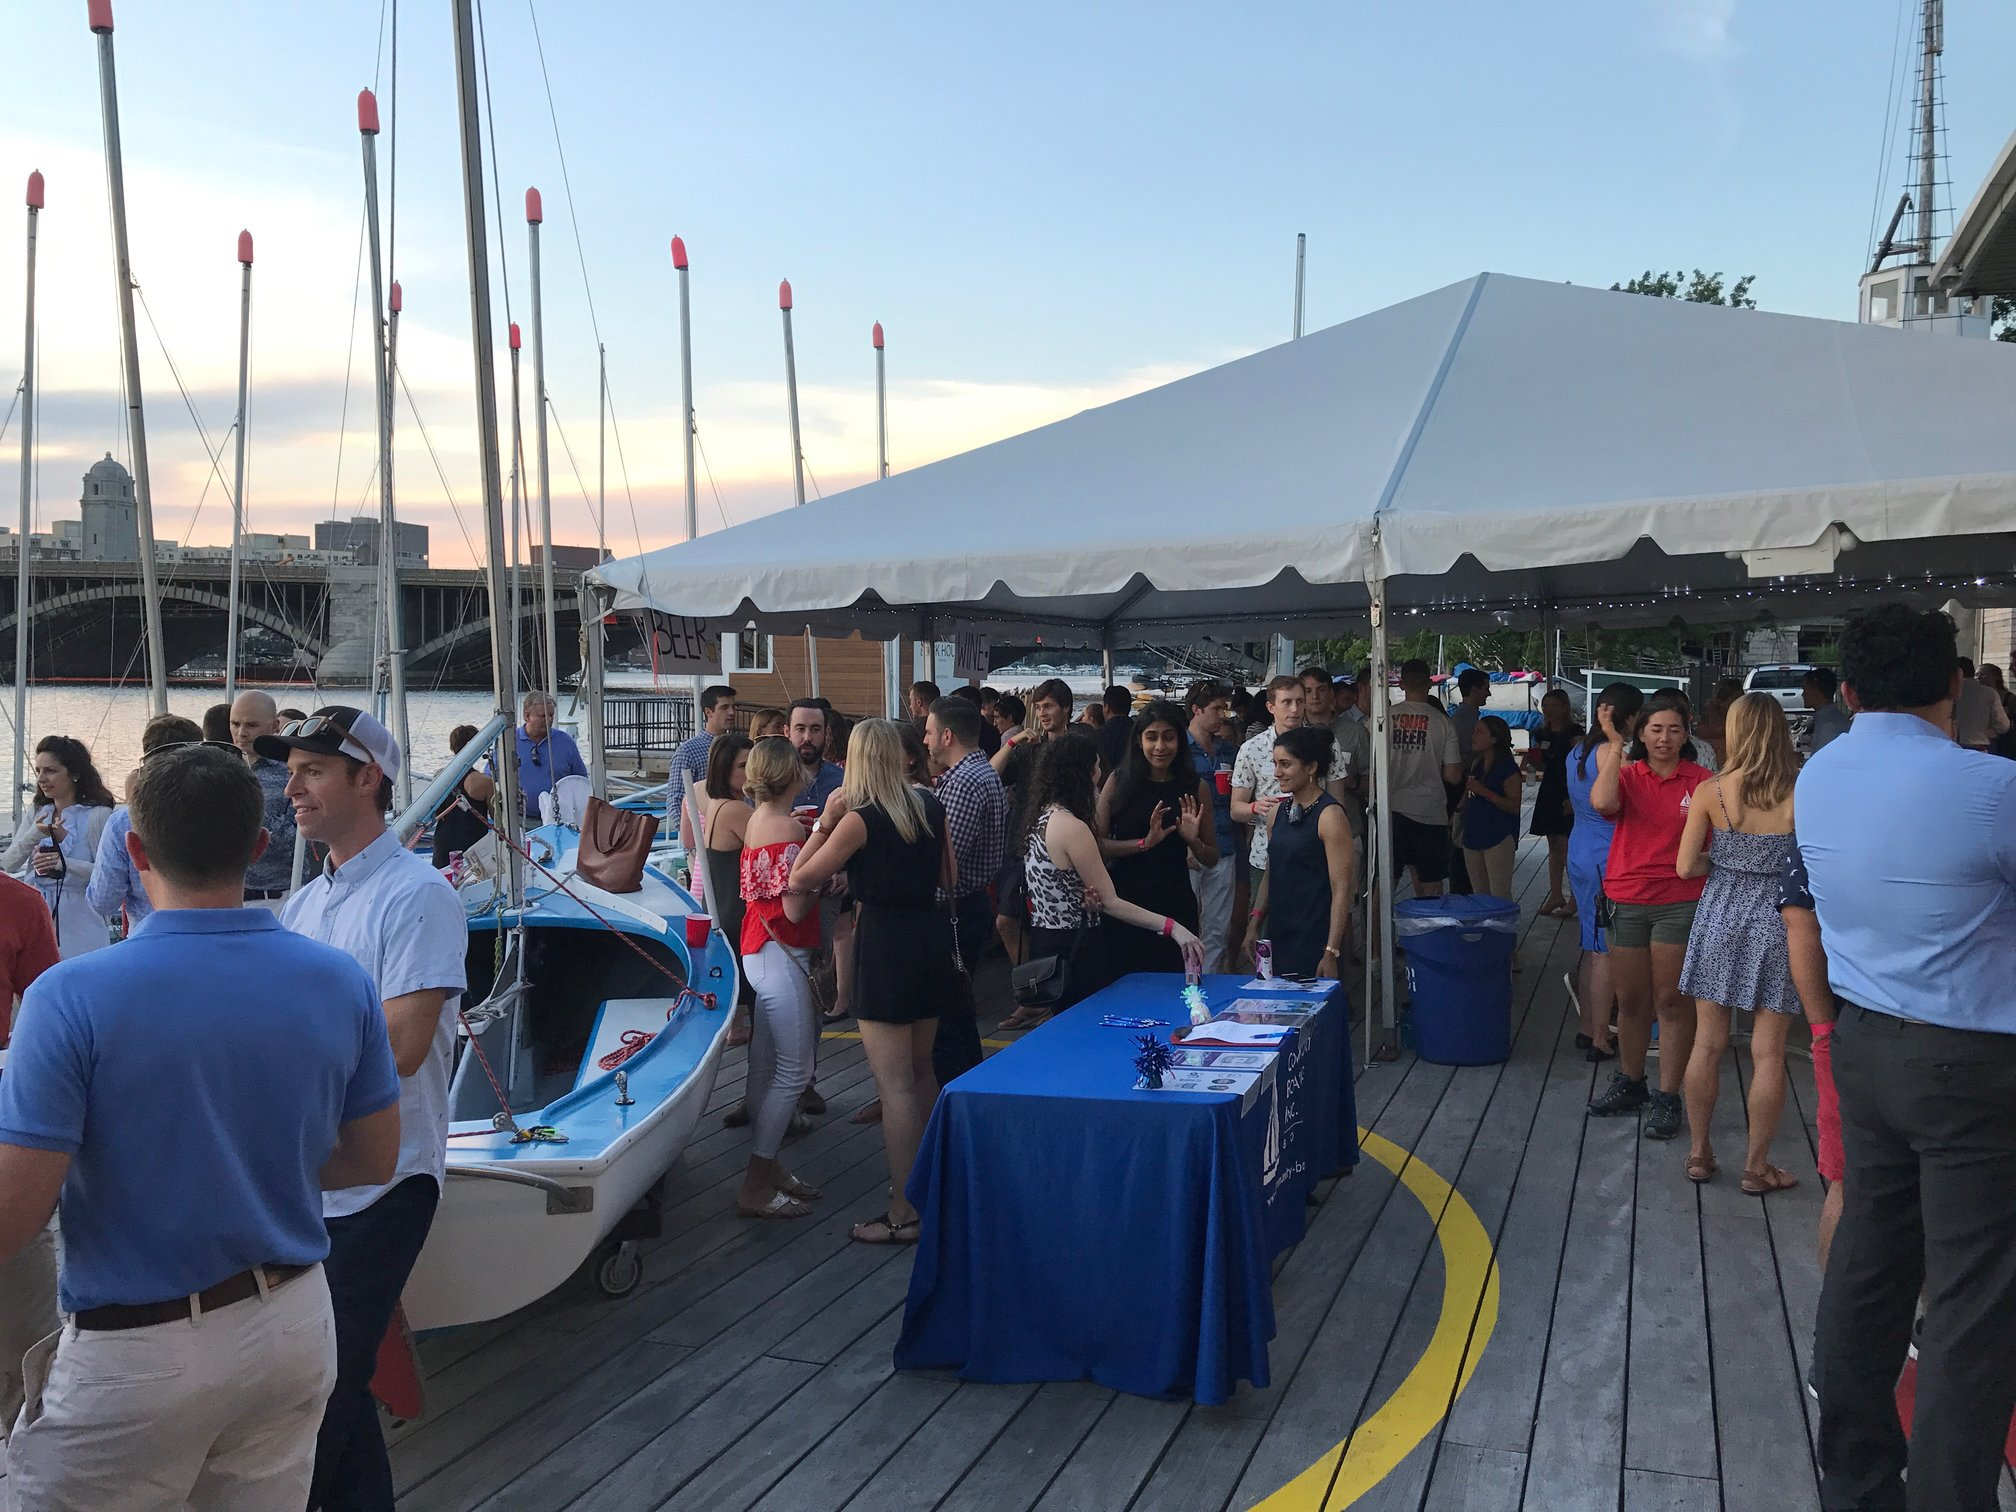 Picture of 2017 dock party